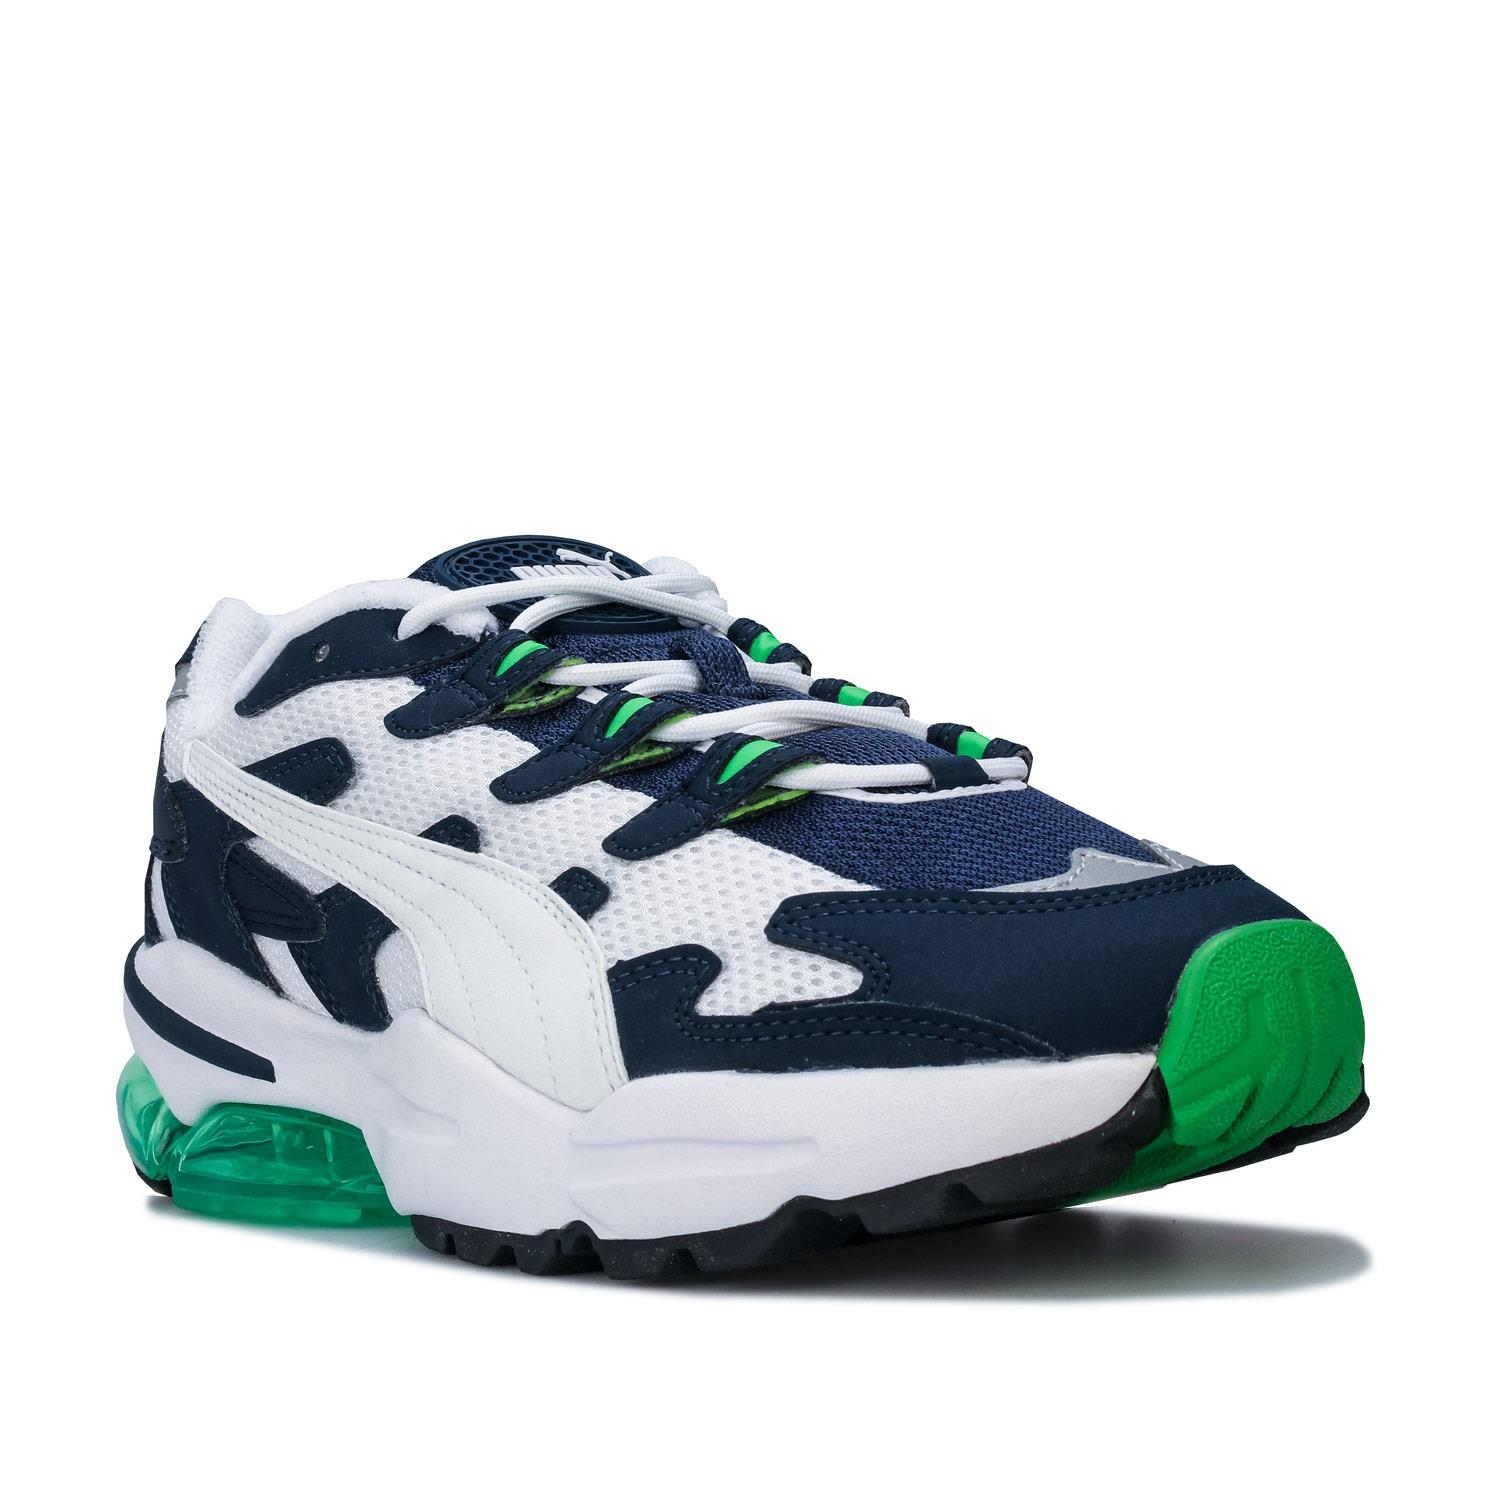 Mens-Puma-Cell-Alien-OG-Trainers-in-Blue-Green-Black-Red-Blue-and-Yellow thumbnail 15